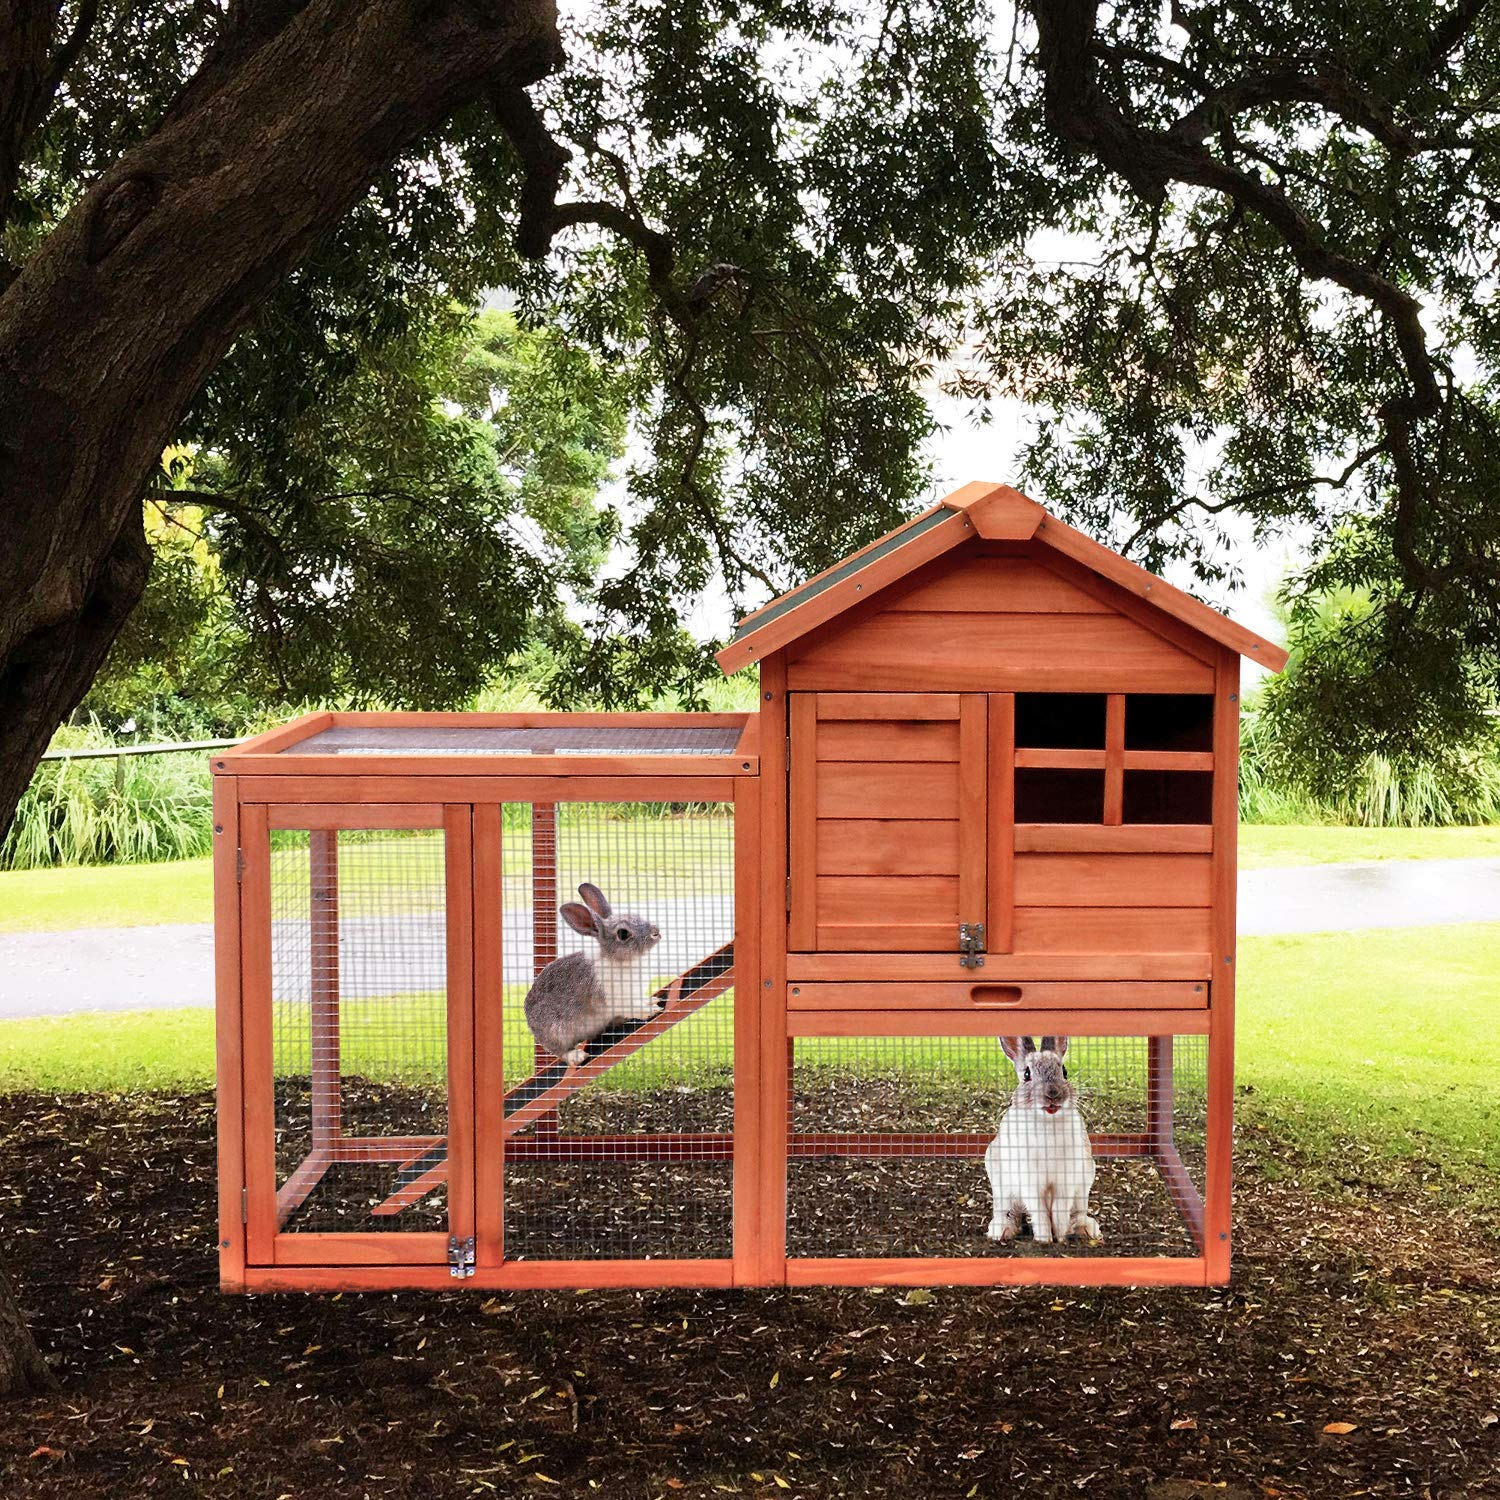 Merax Pet Rabbit Hutch Bunny Cage Wooden House Chicken Coops, Orange by Merax